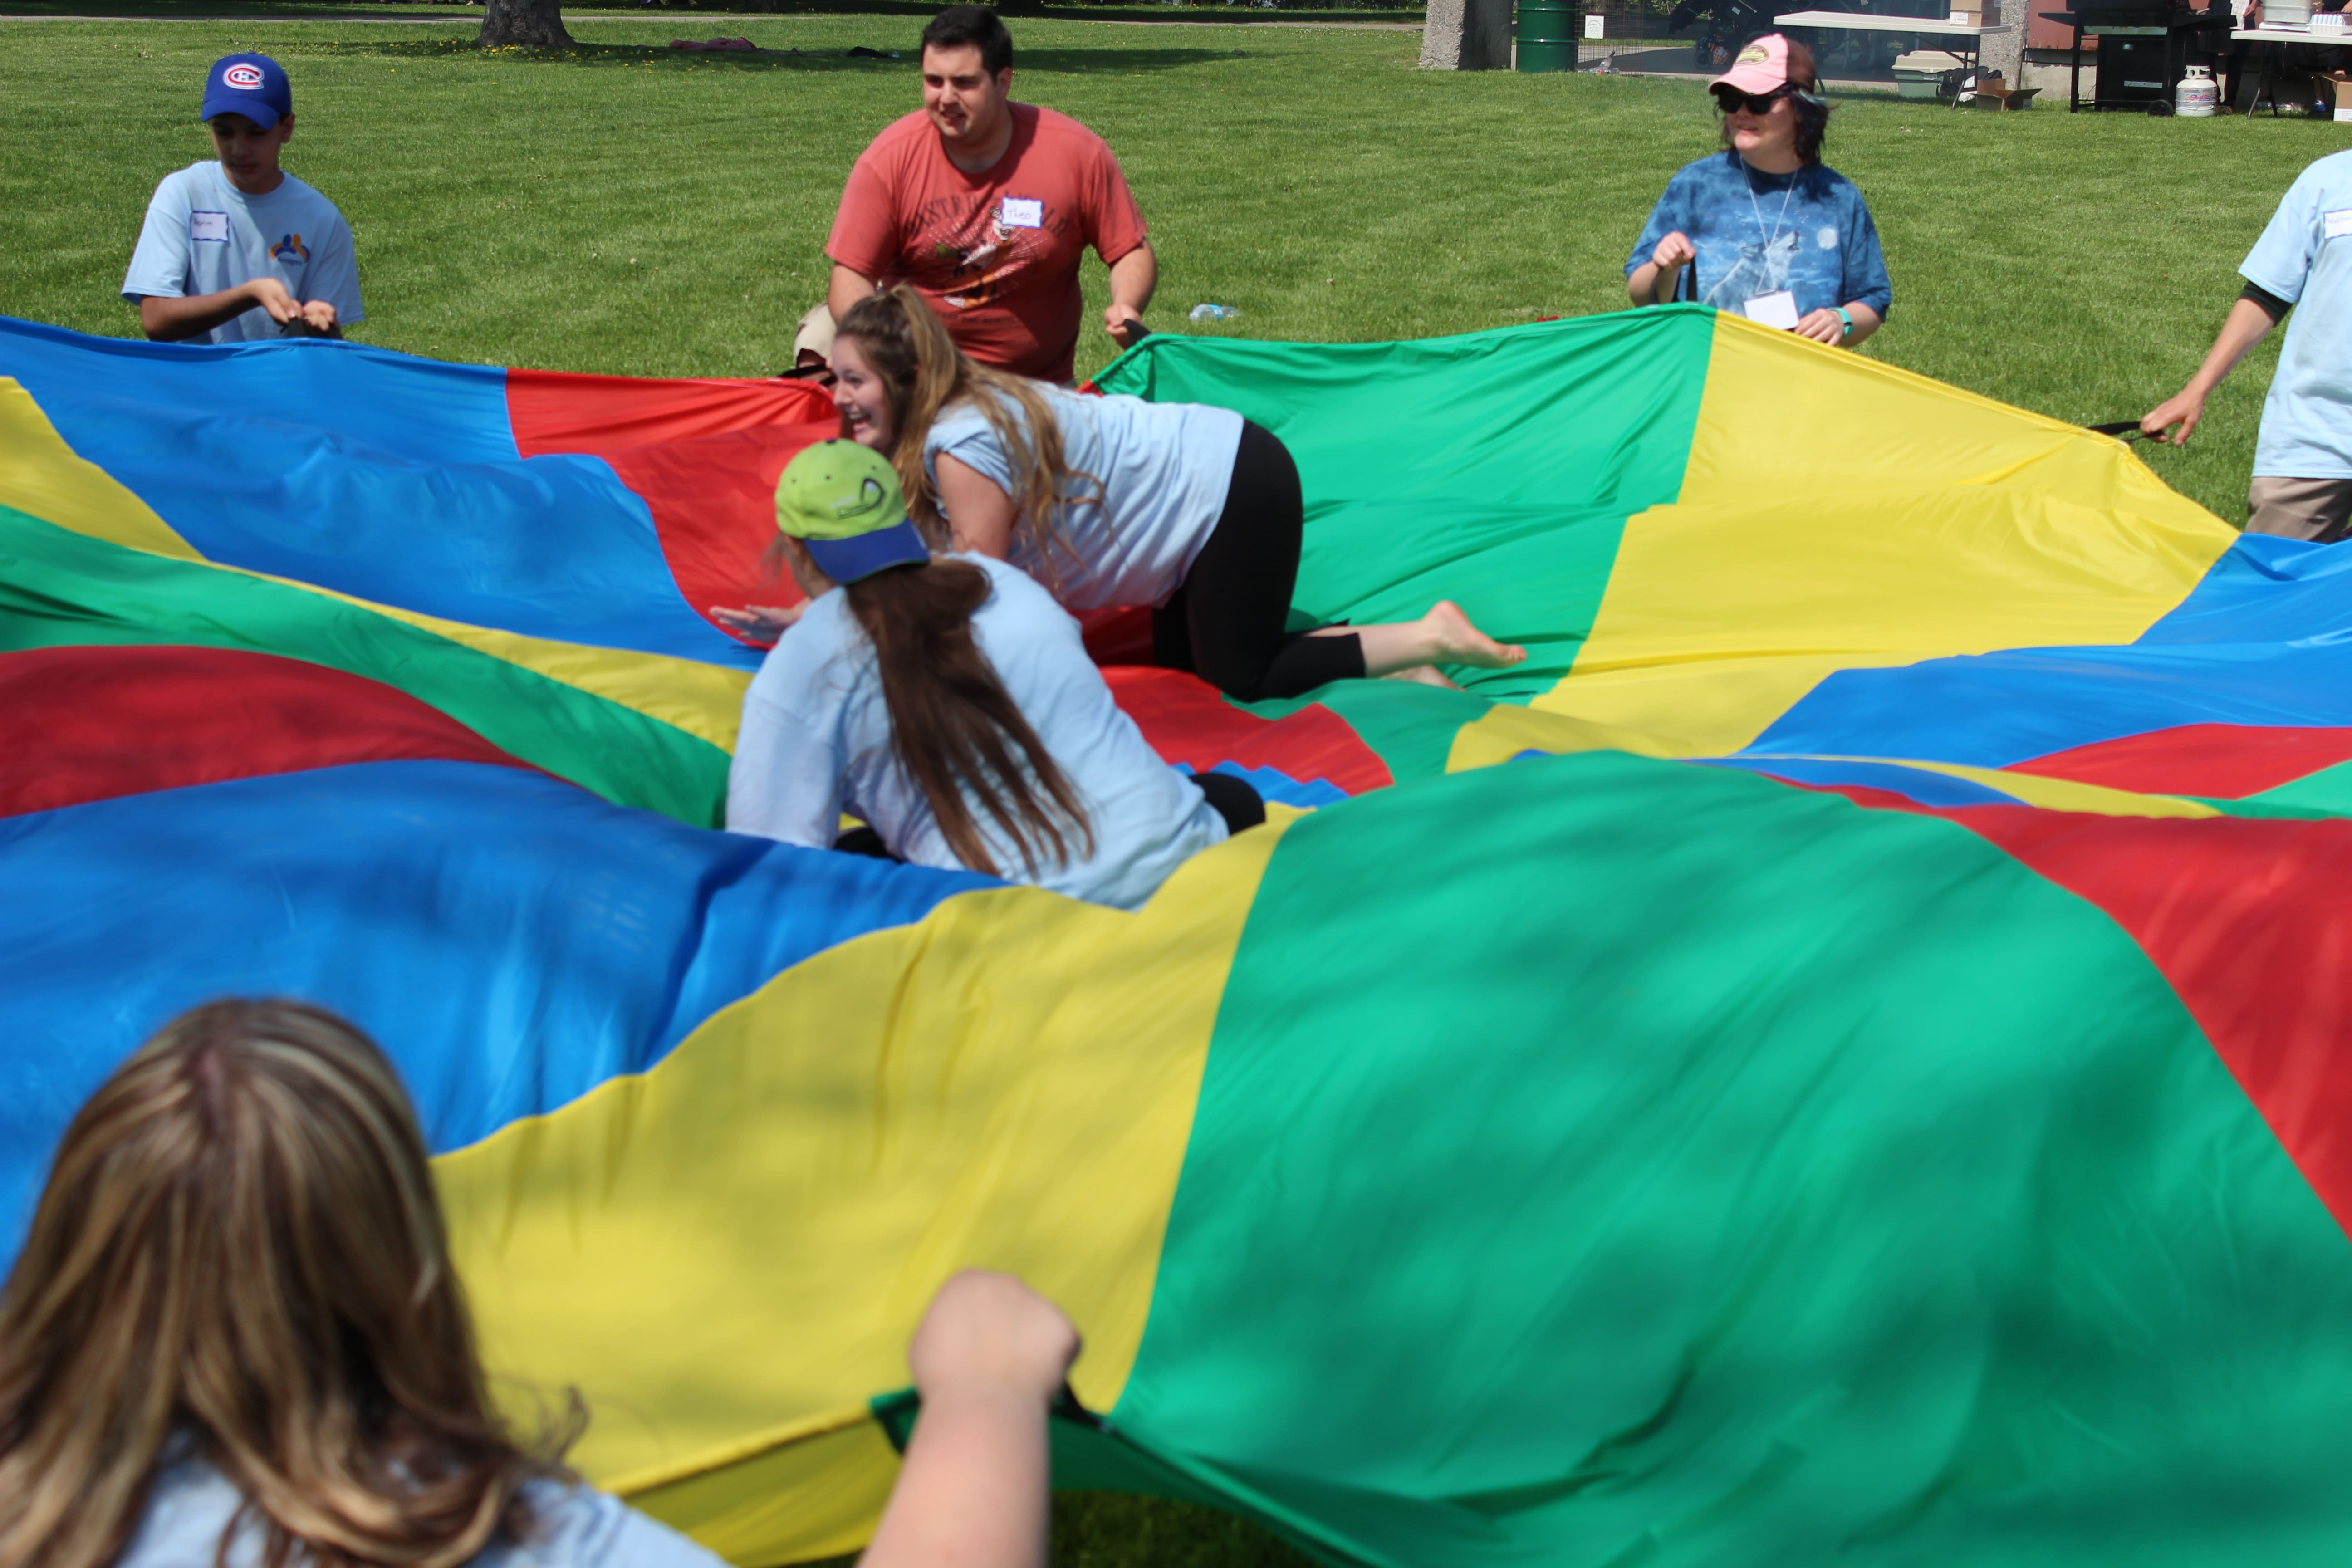 School-aged individuals play with a large parachute